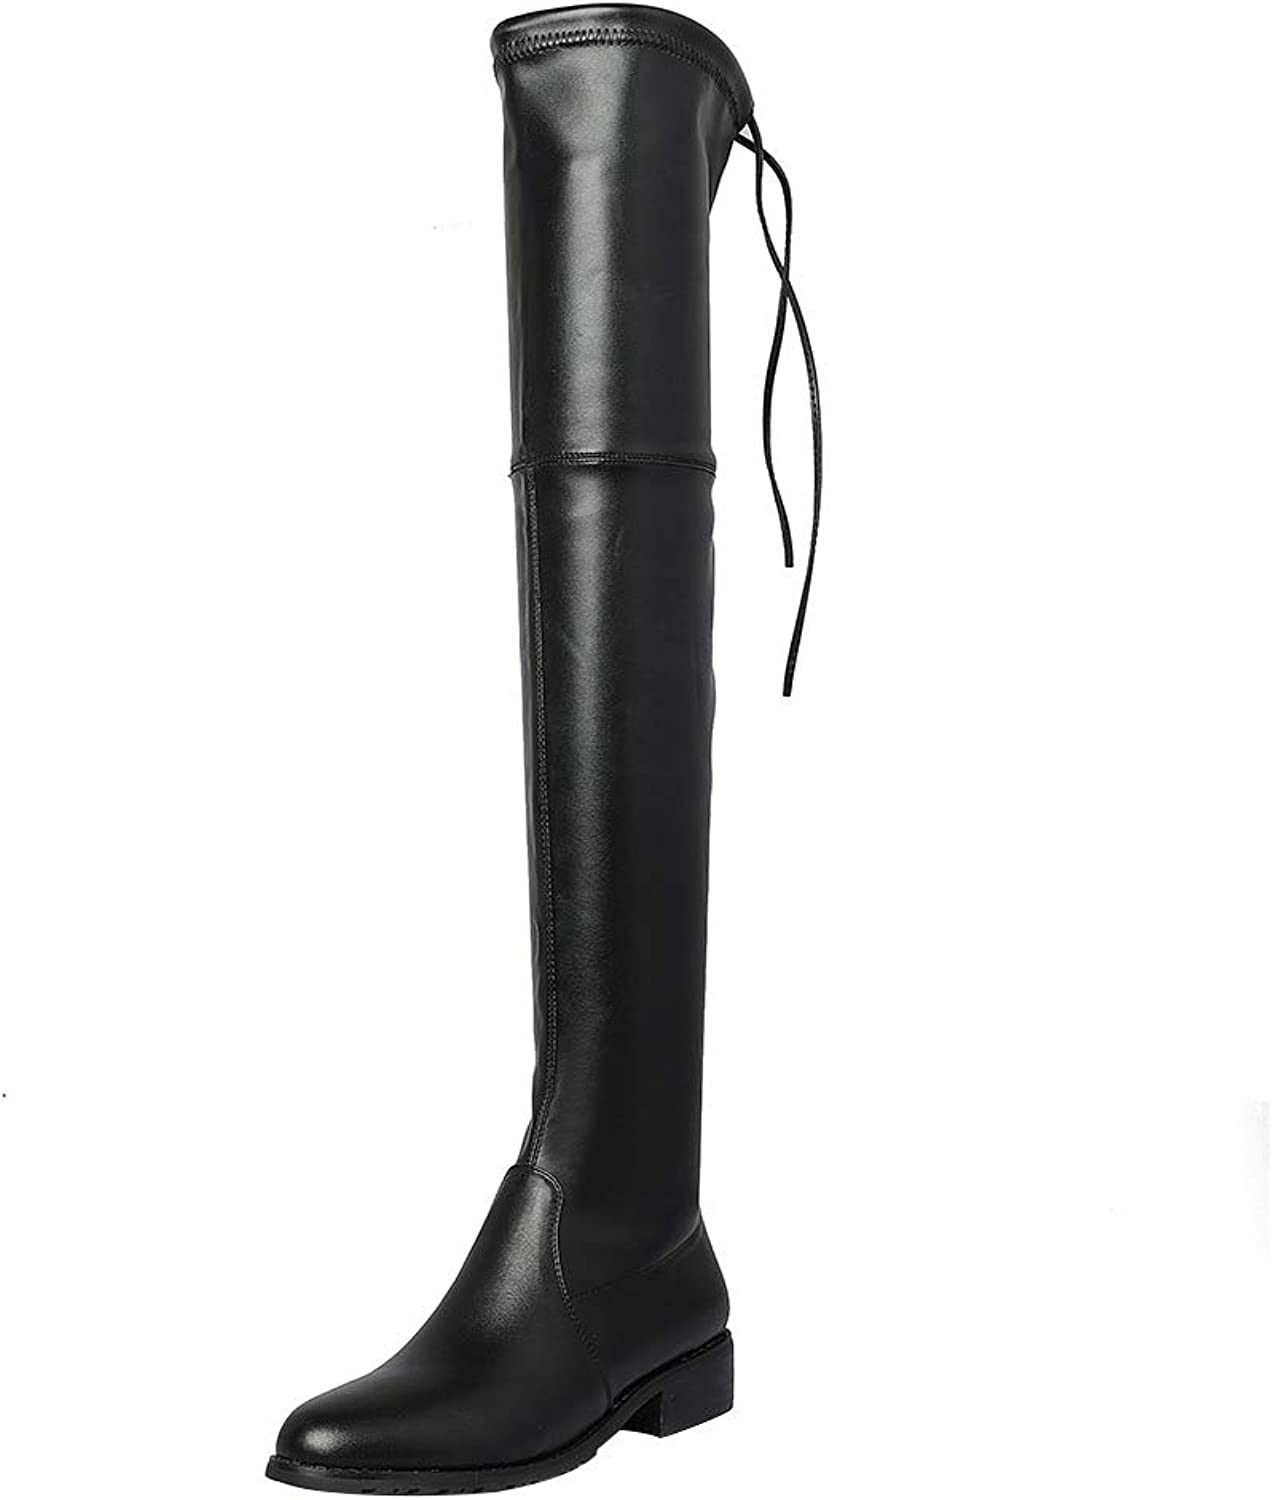 MAYPIE Womens Toannoy Leather Slip-on Over-The-Knee Boots